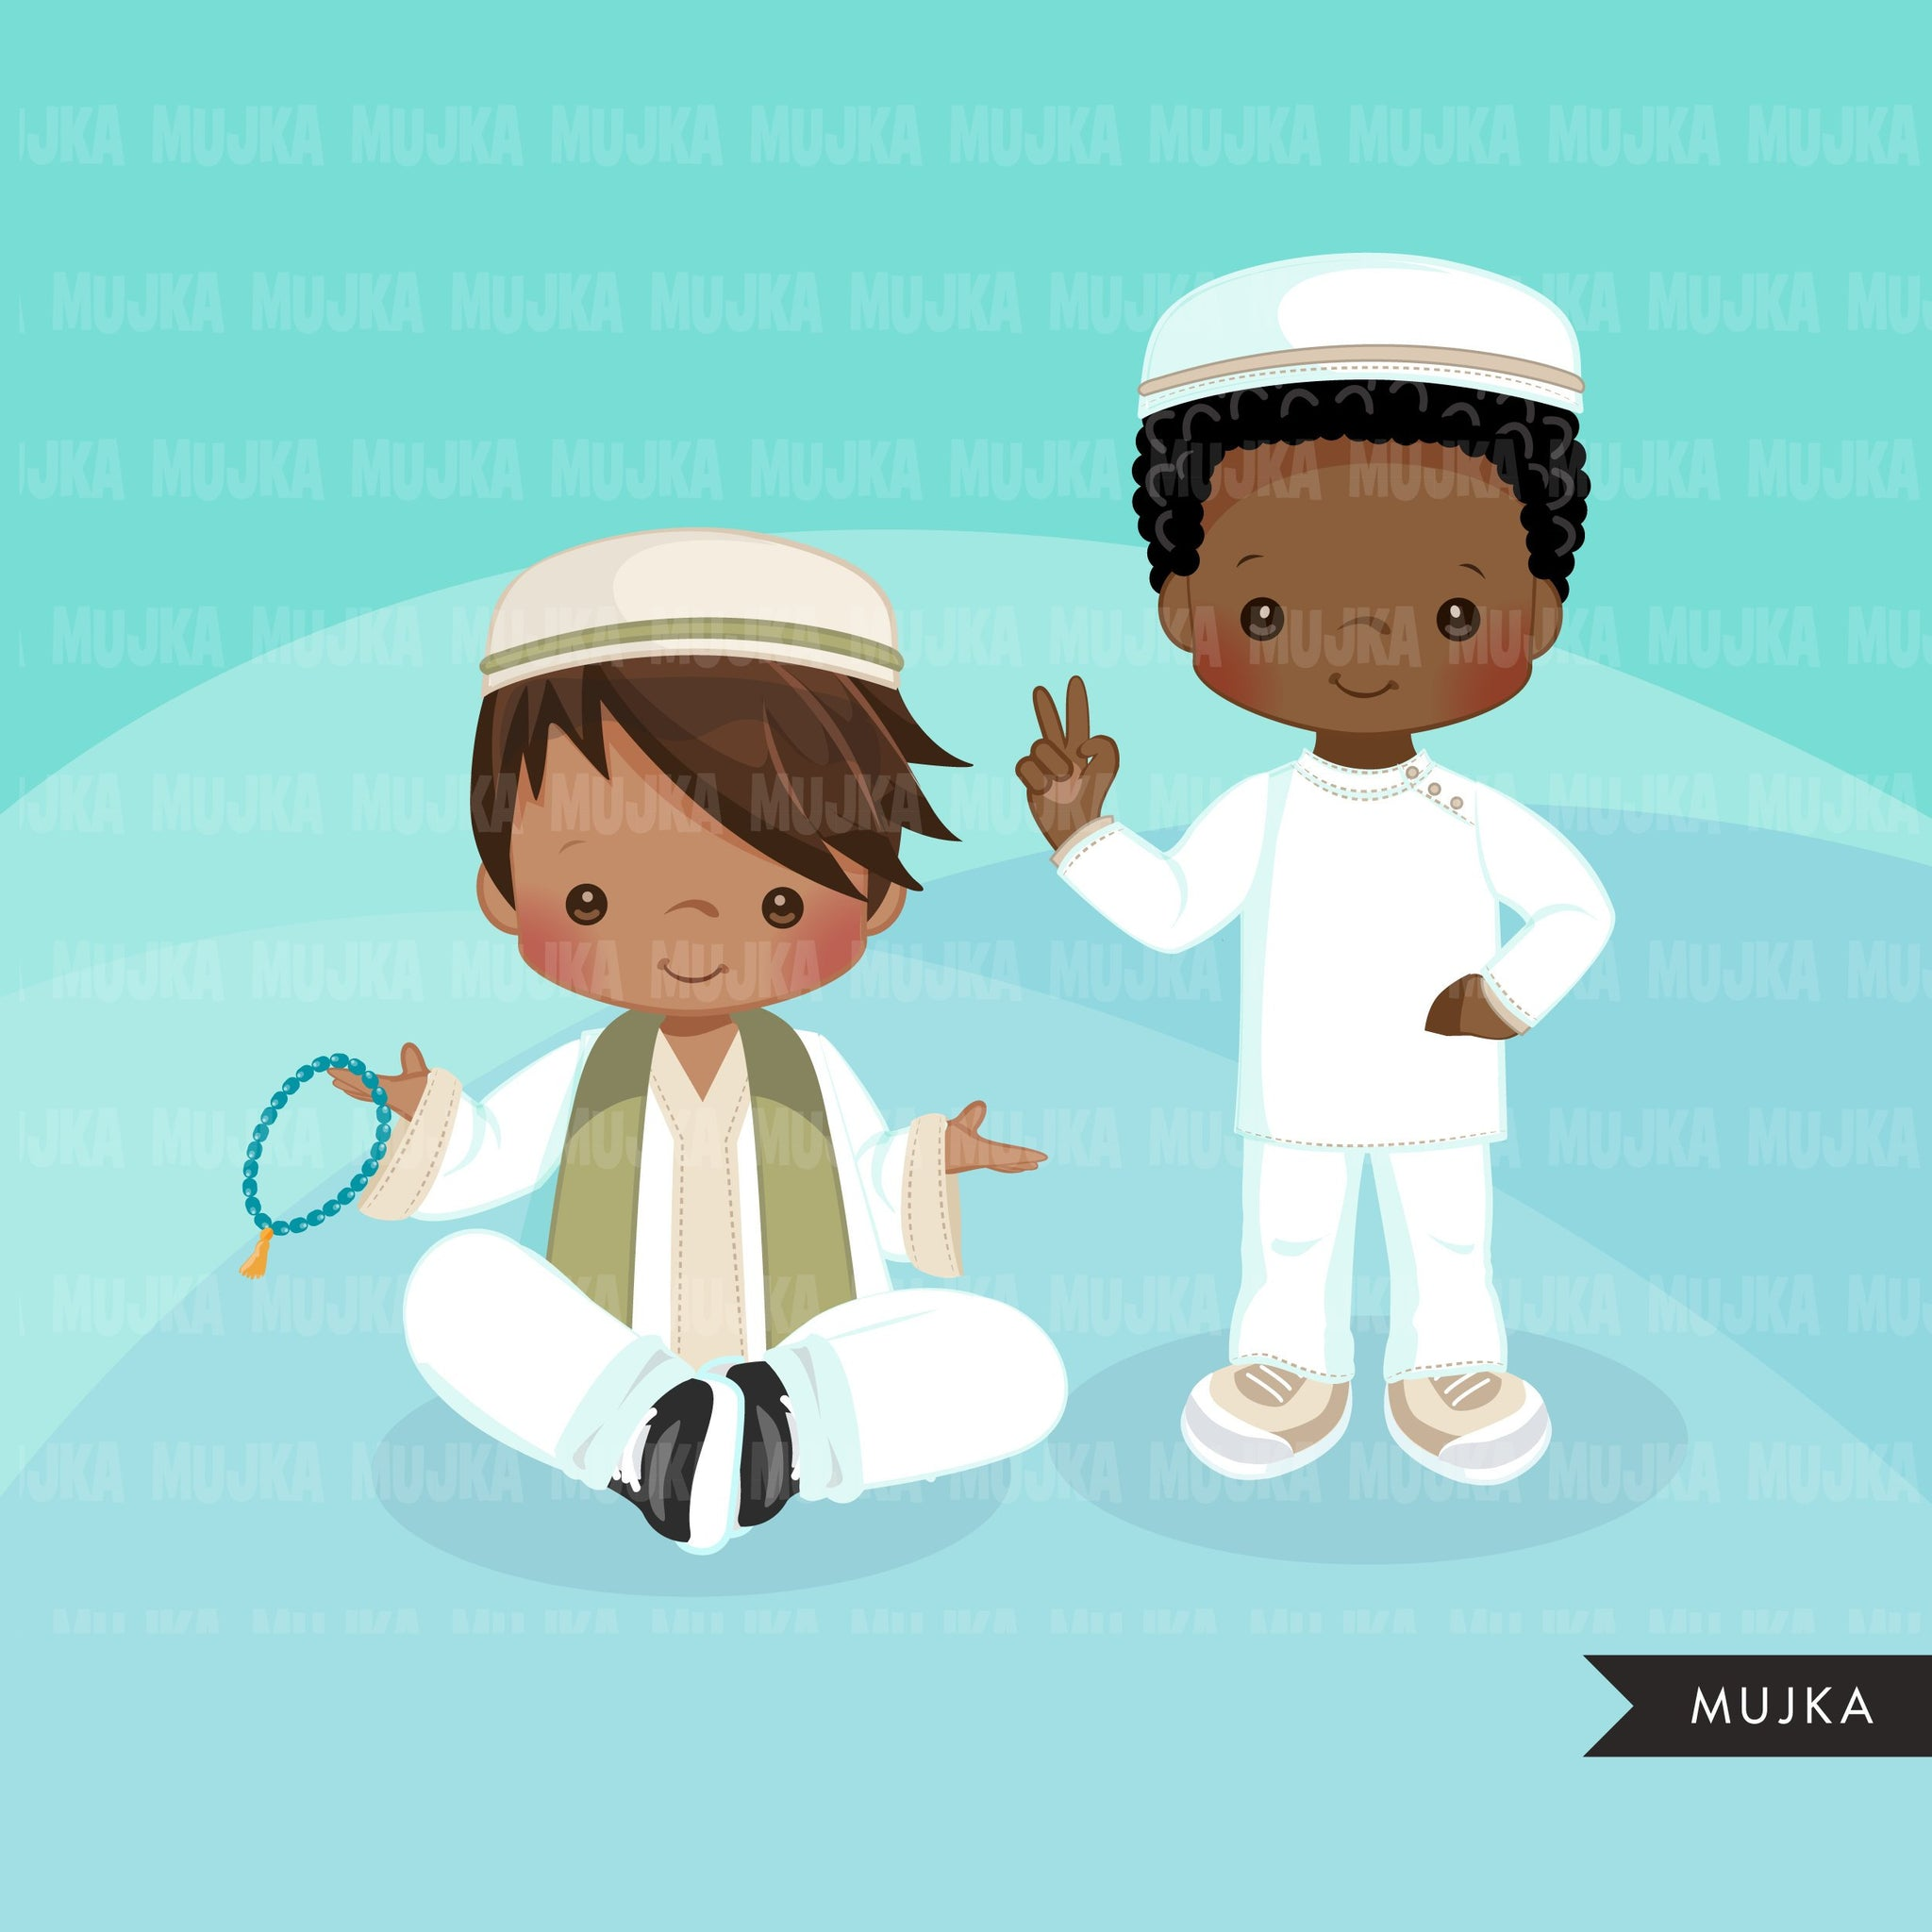 Muslim boys clipart. Islam graphics, Quran reading kids with Taqiyah and Misbaha, Tasbih clip art